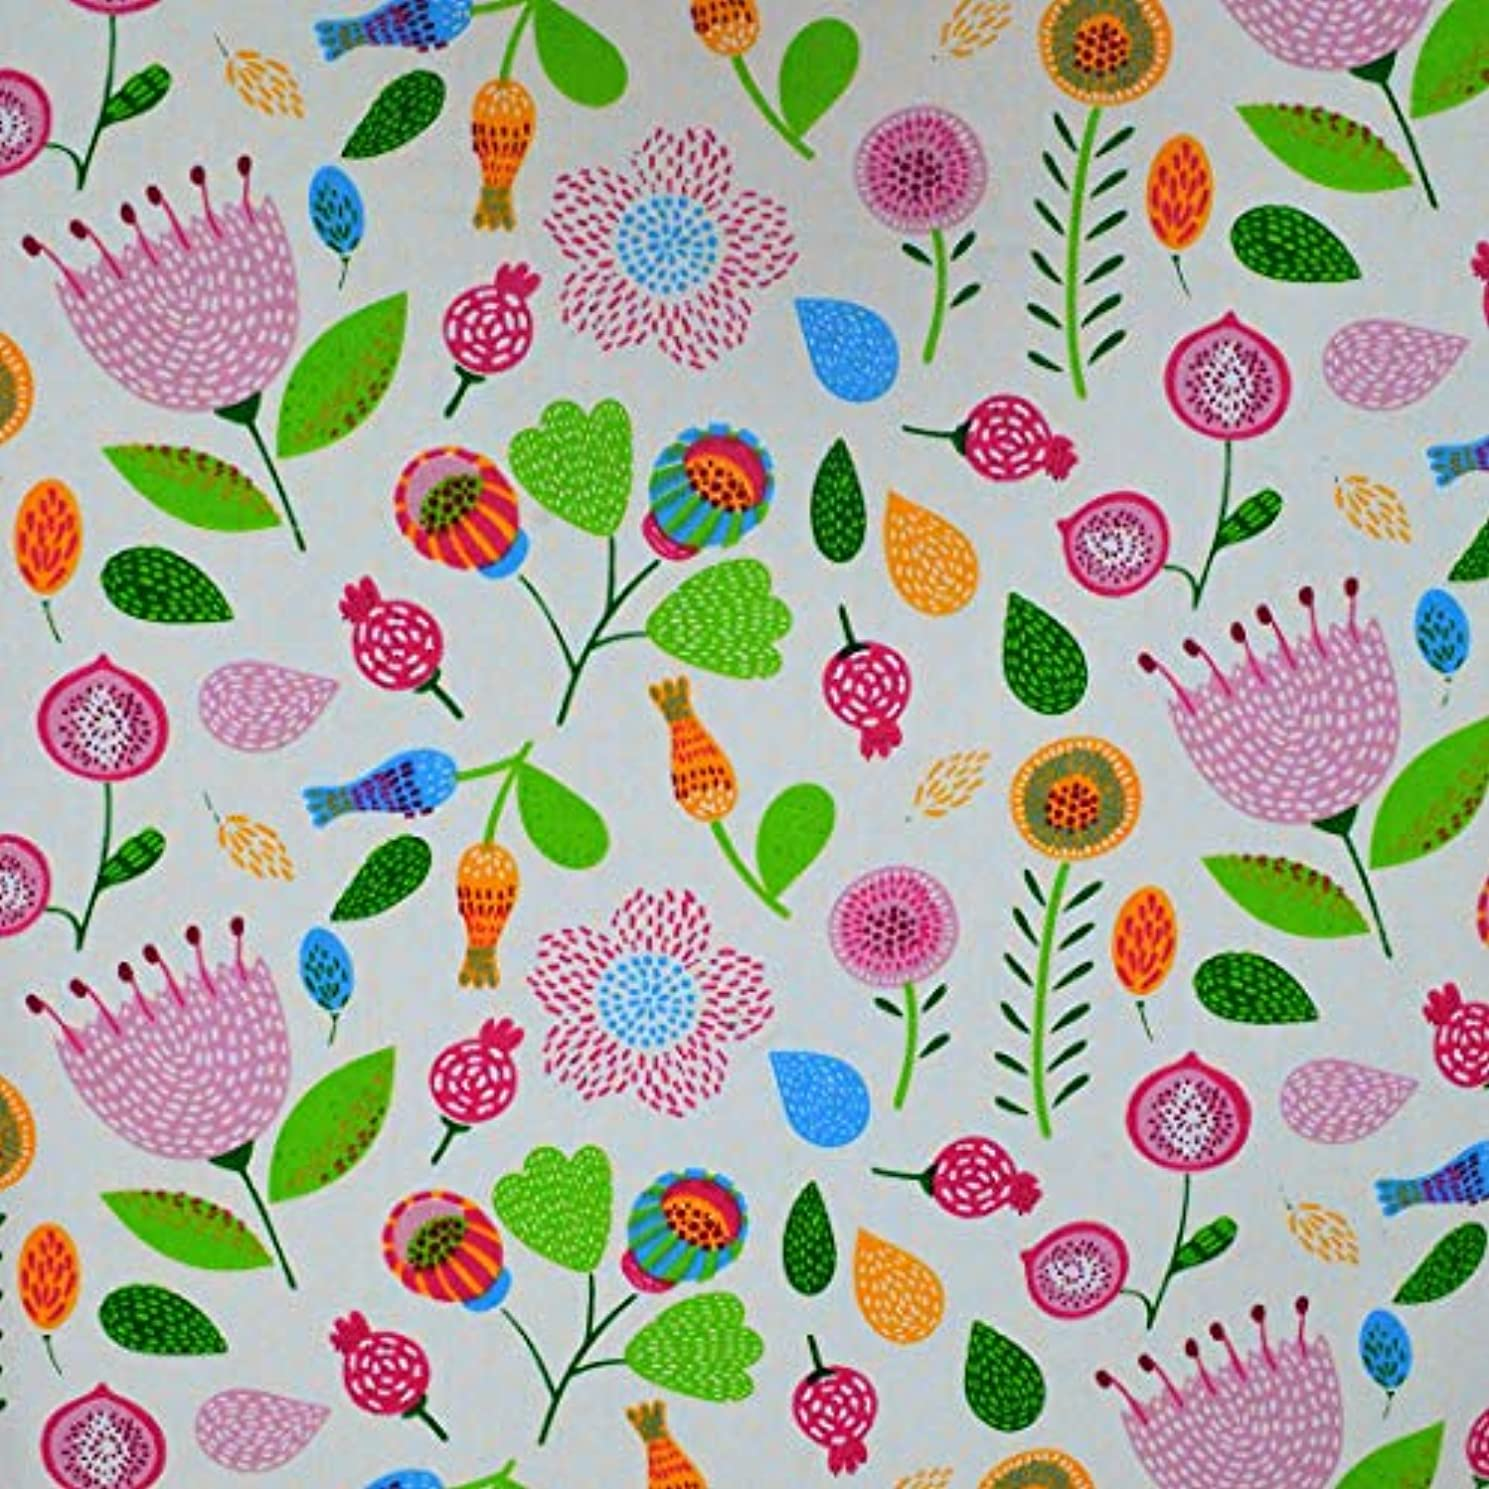 iNee Pink Flower Quilting Sewing Fabric by The Yard, 100% Cotton, 2 Yards